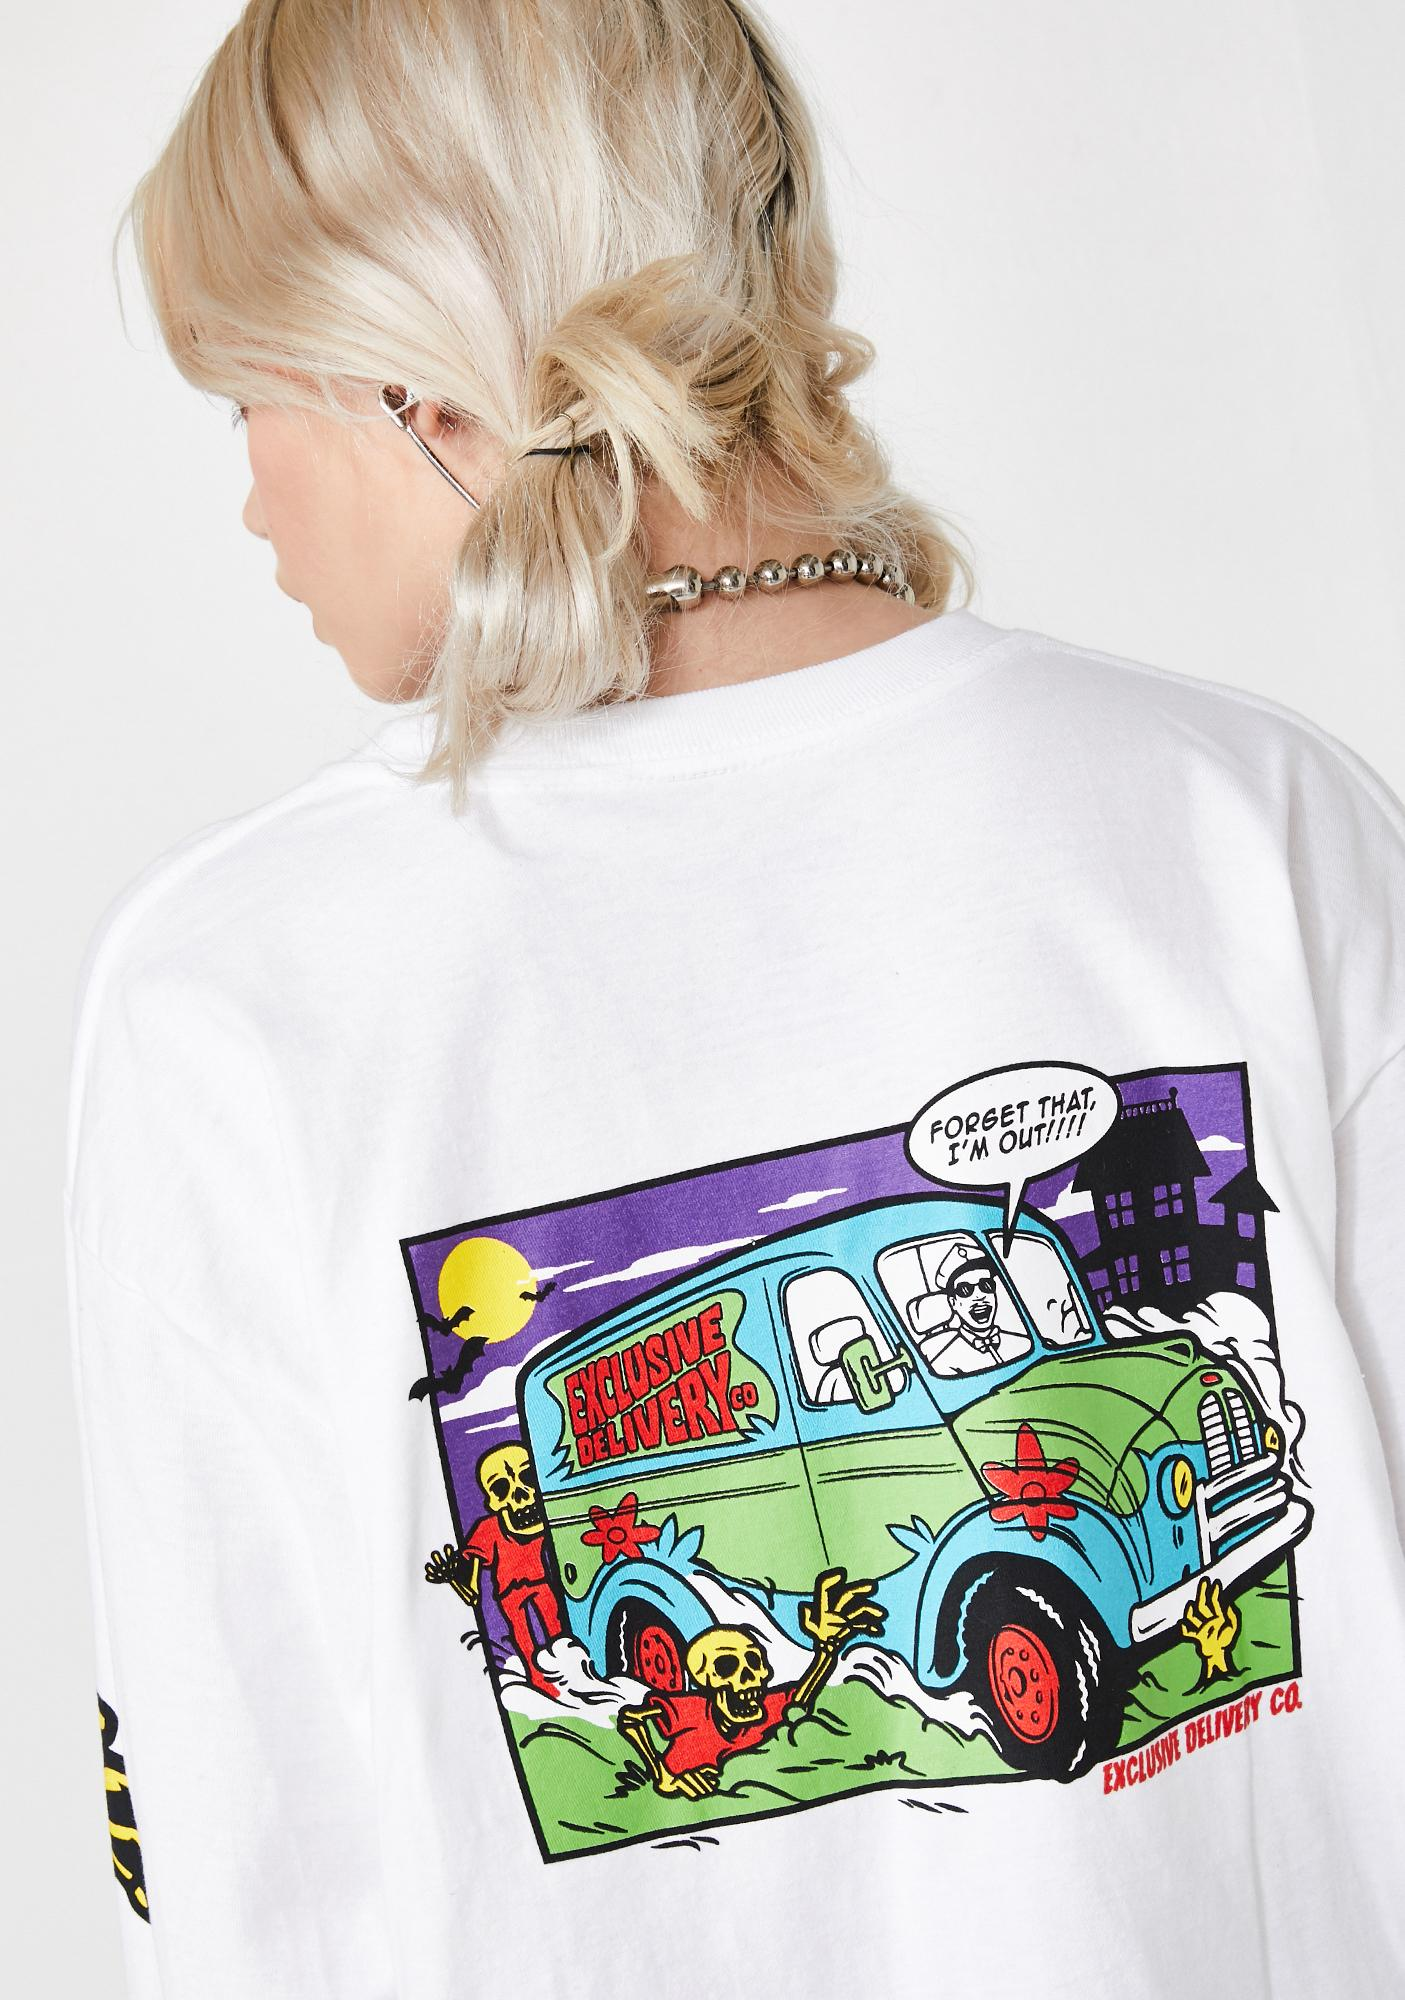 EXCLUSIVE DELIVERY CO. I'm Out Long Sleeve Tee